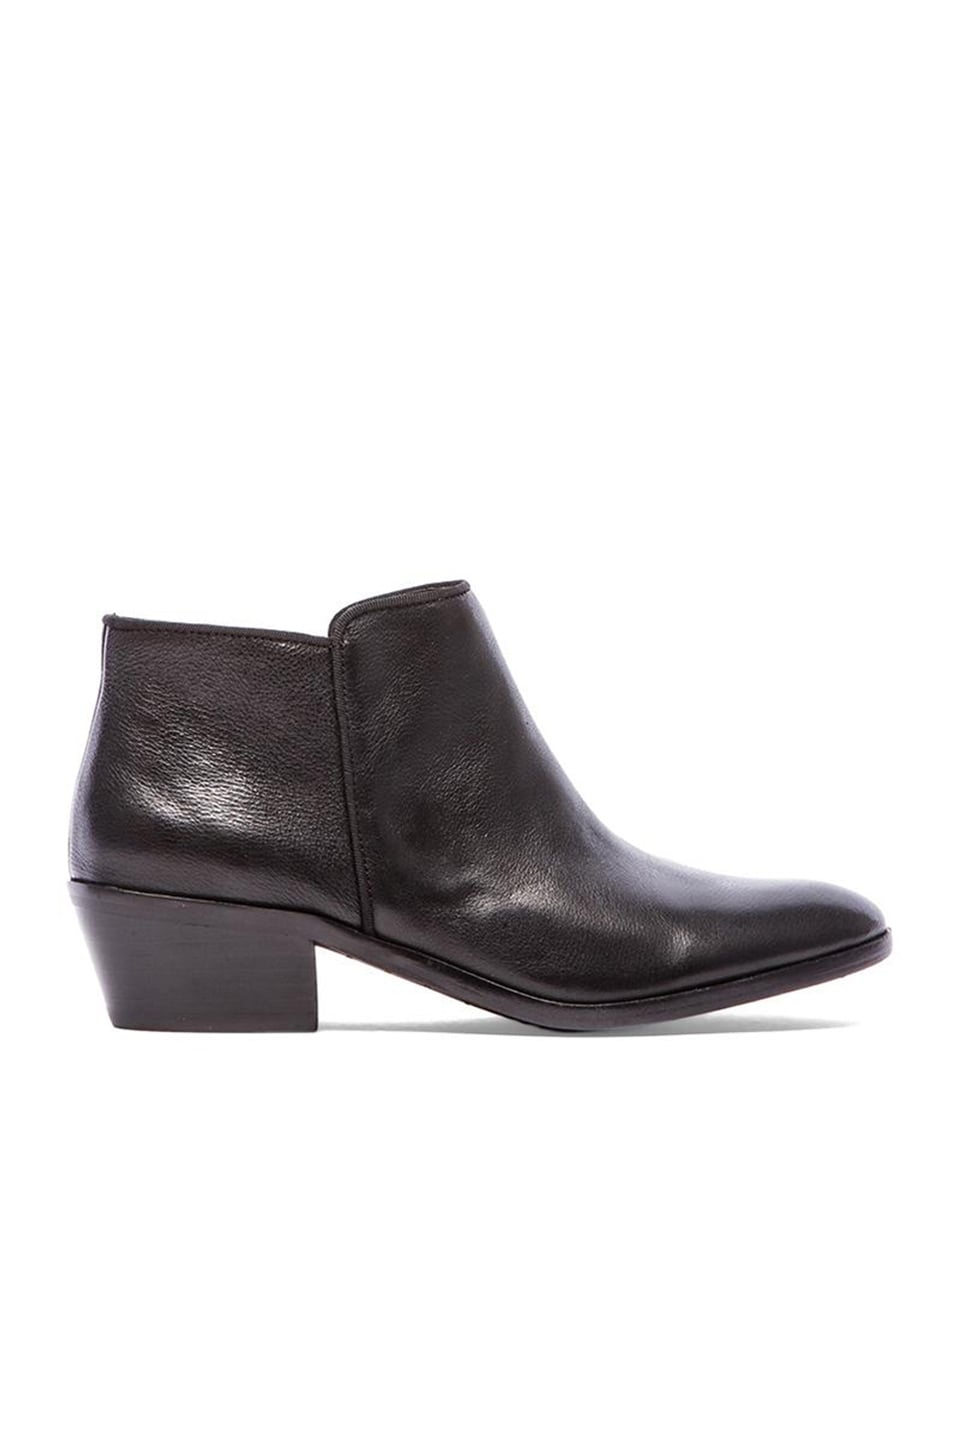 Sam Edelman Petty Bootie in Black Vintage Leather